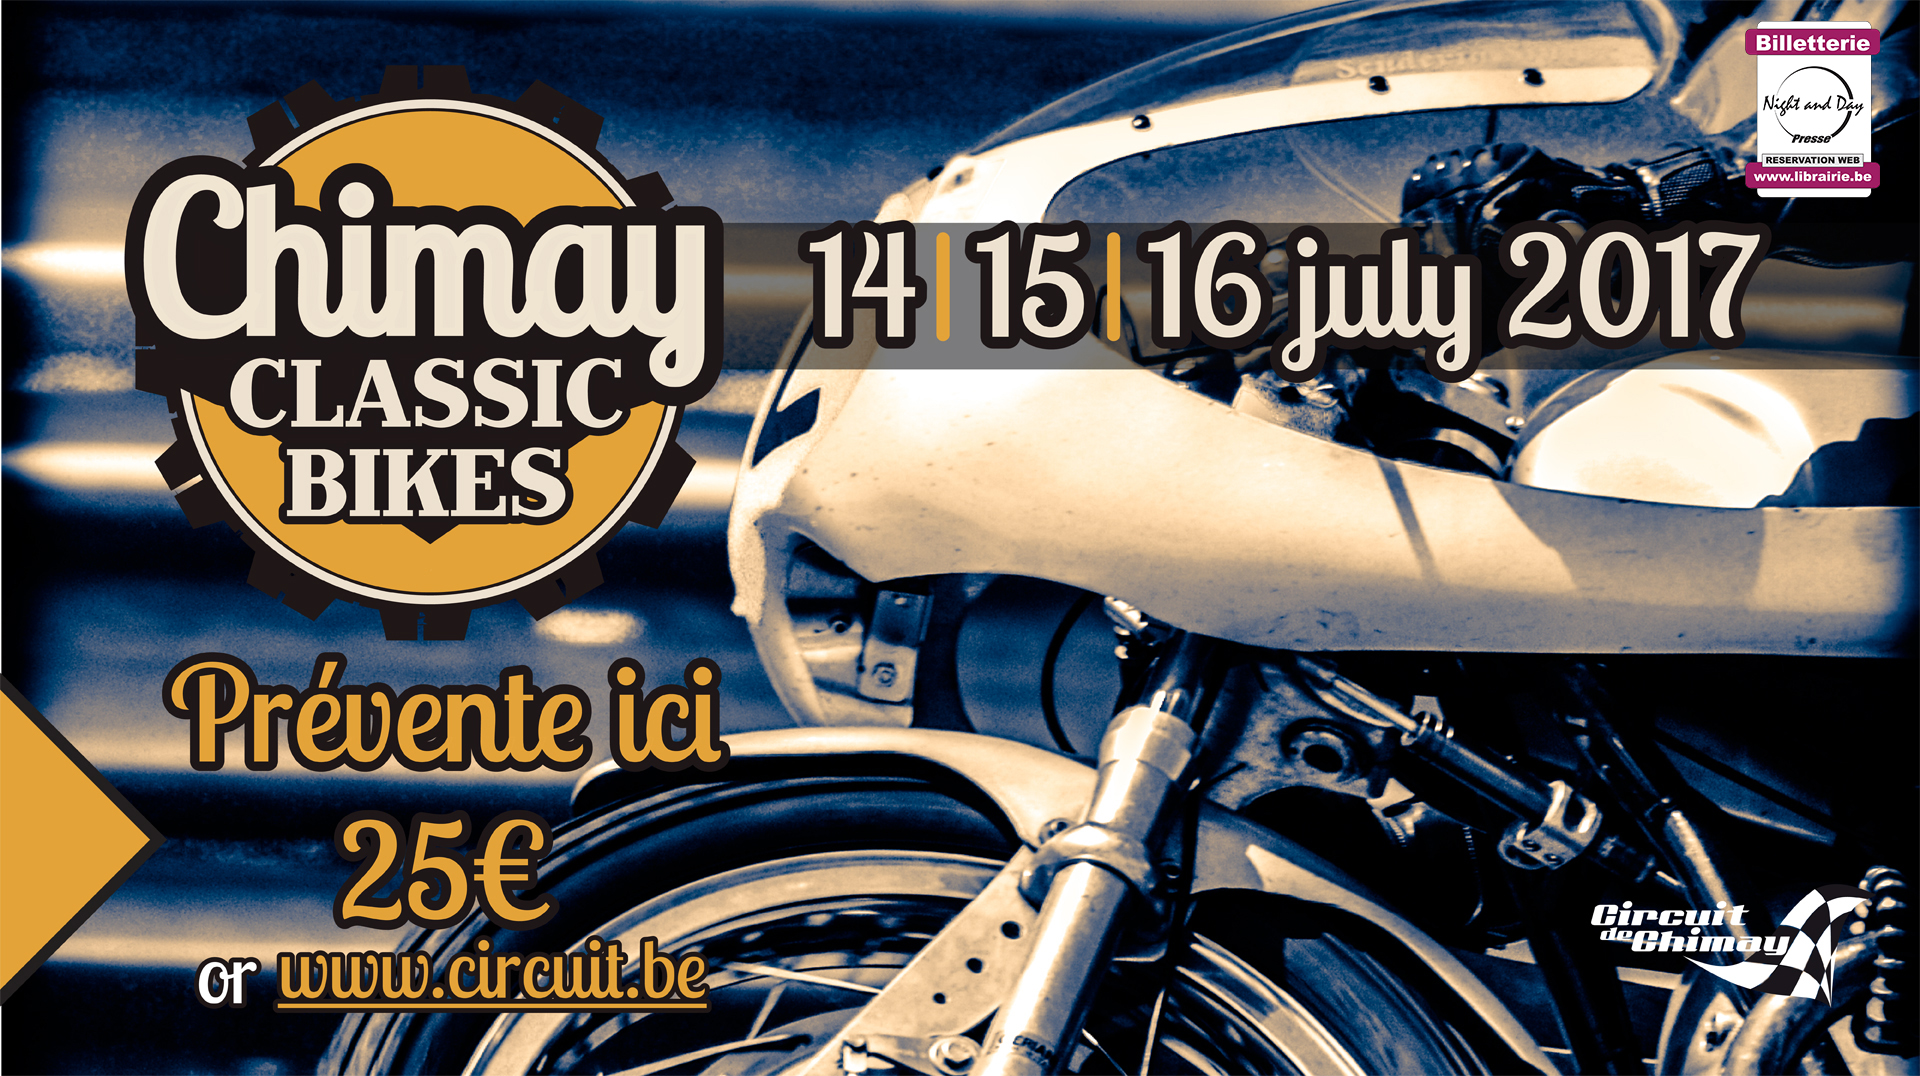 Concours Chimay Classic Bikes